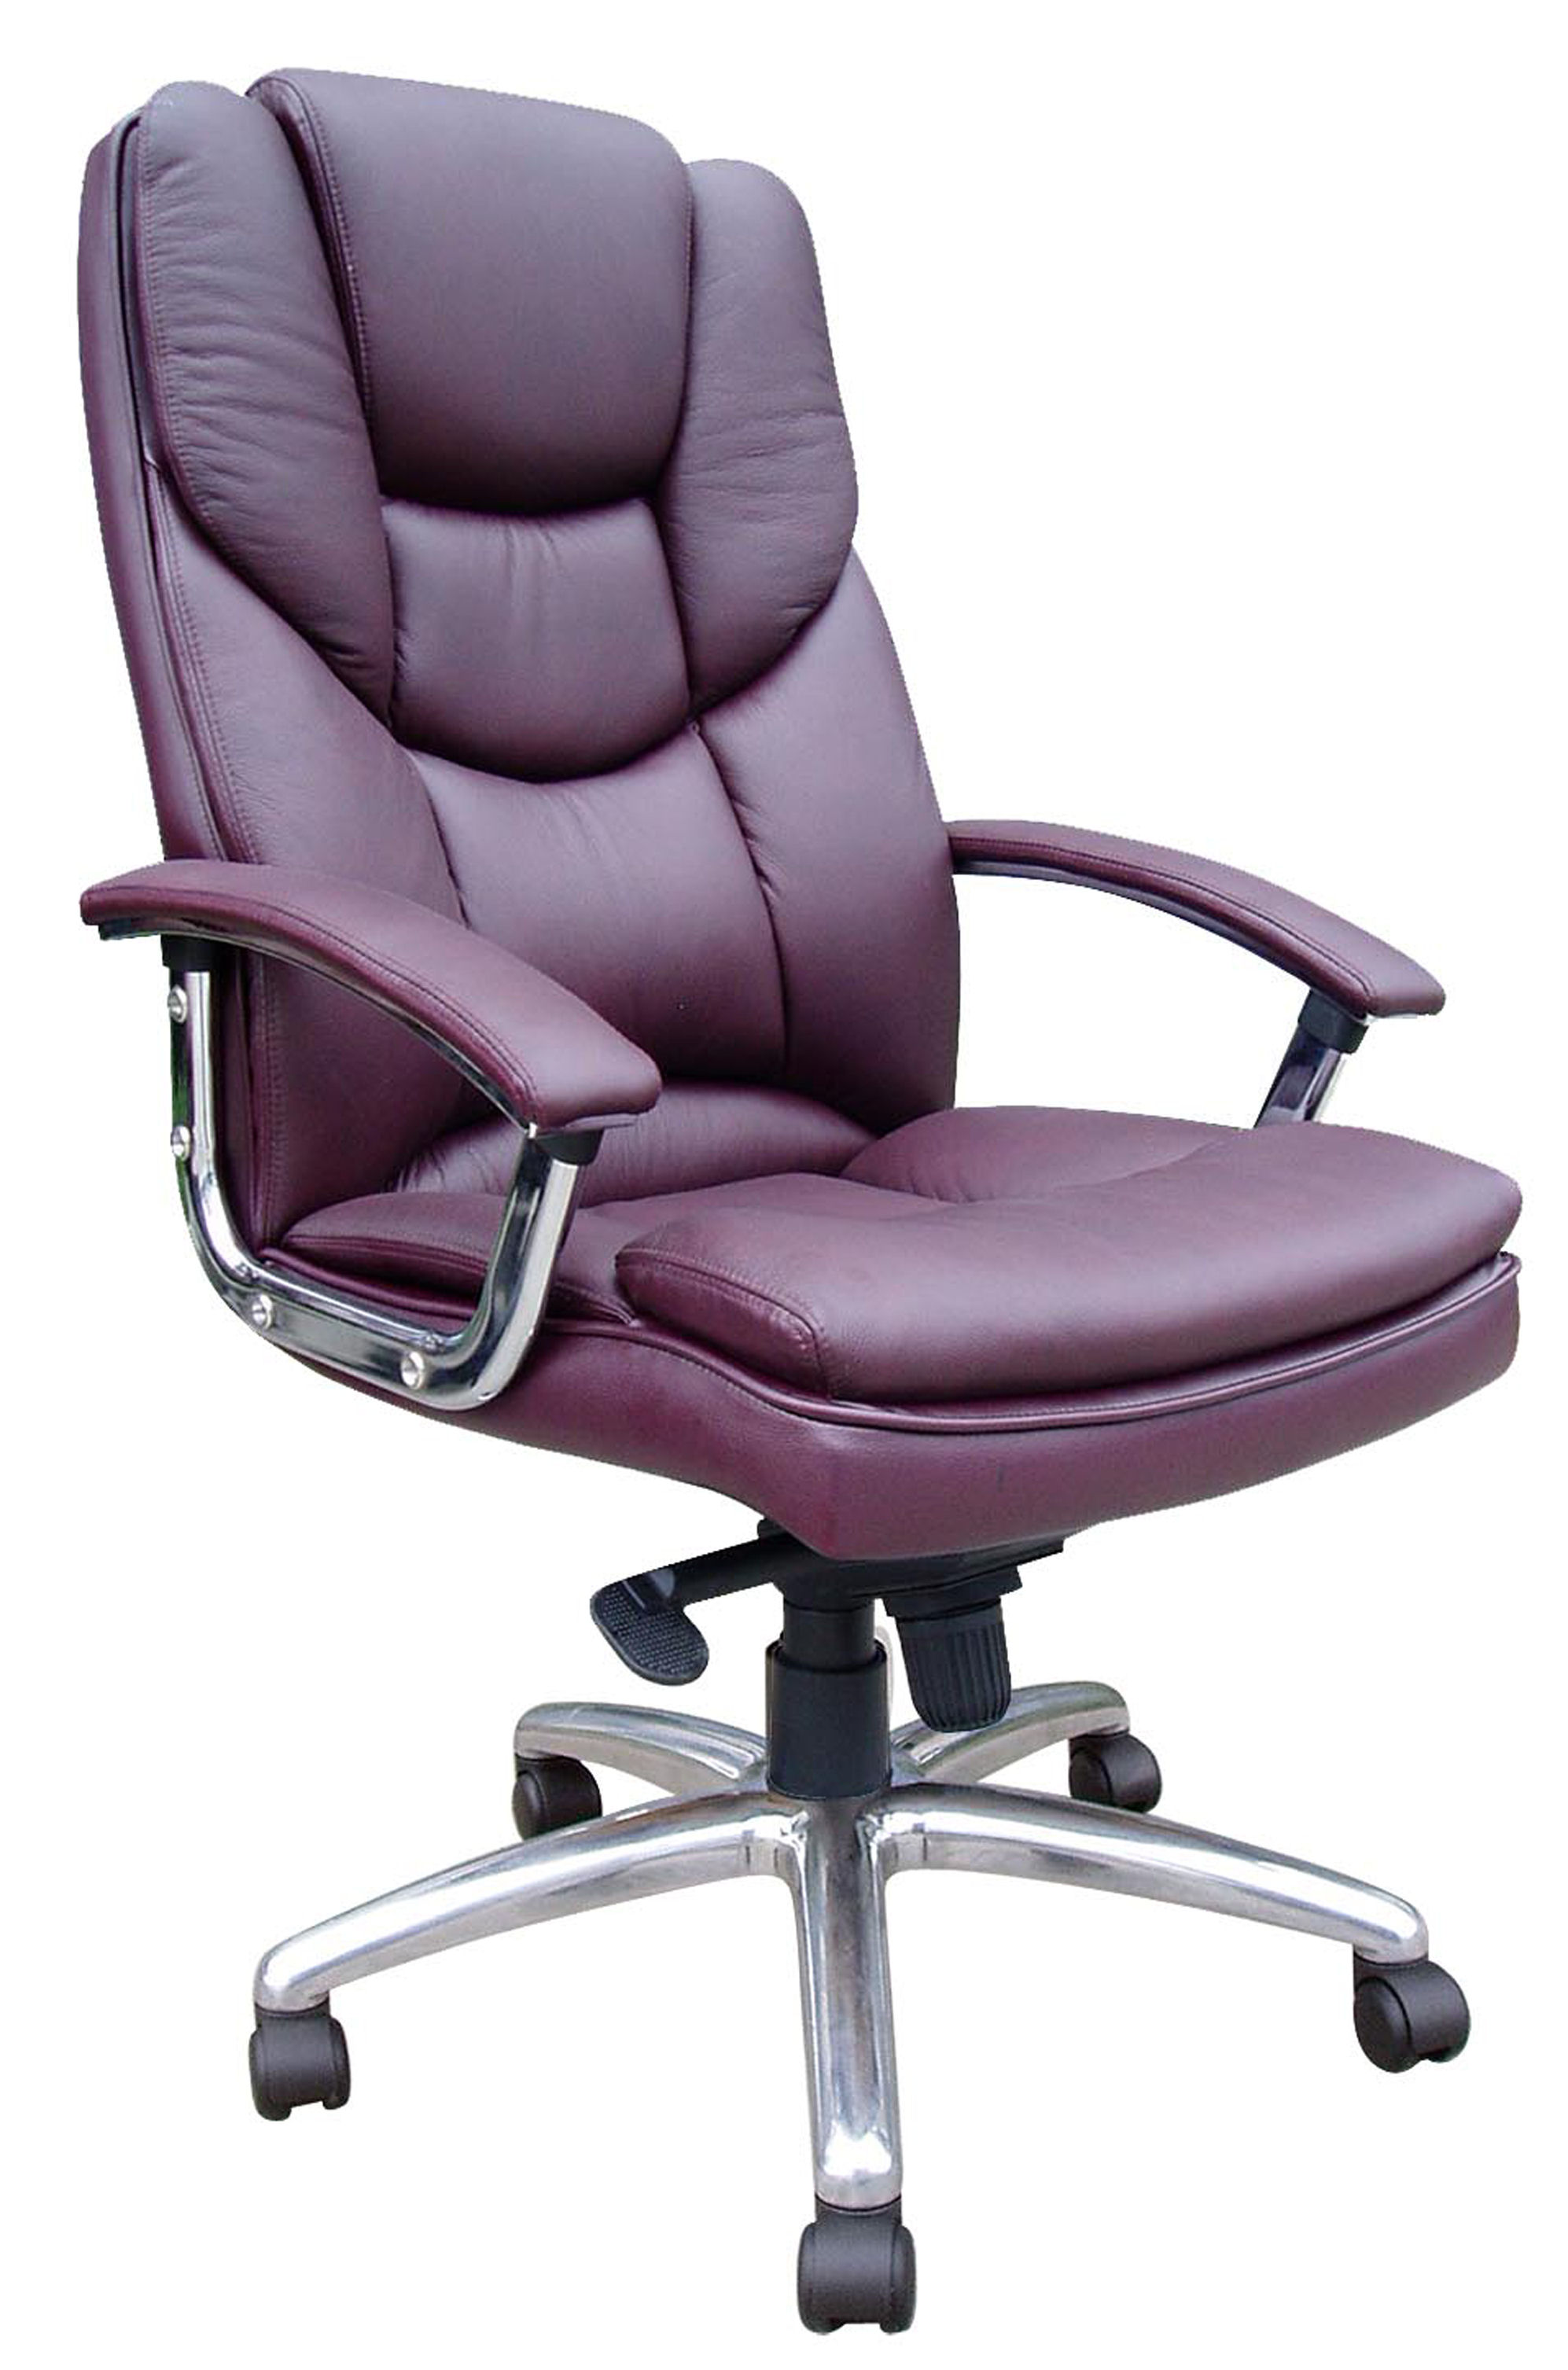 Luxury Office Chair Skyline Luxury Leather Office Chair